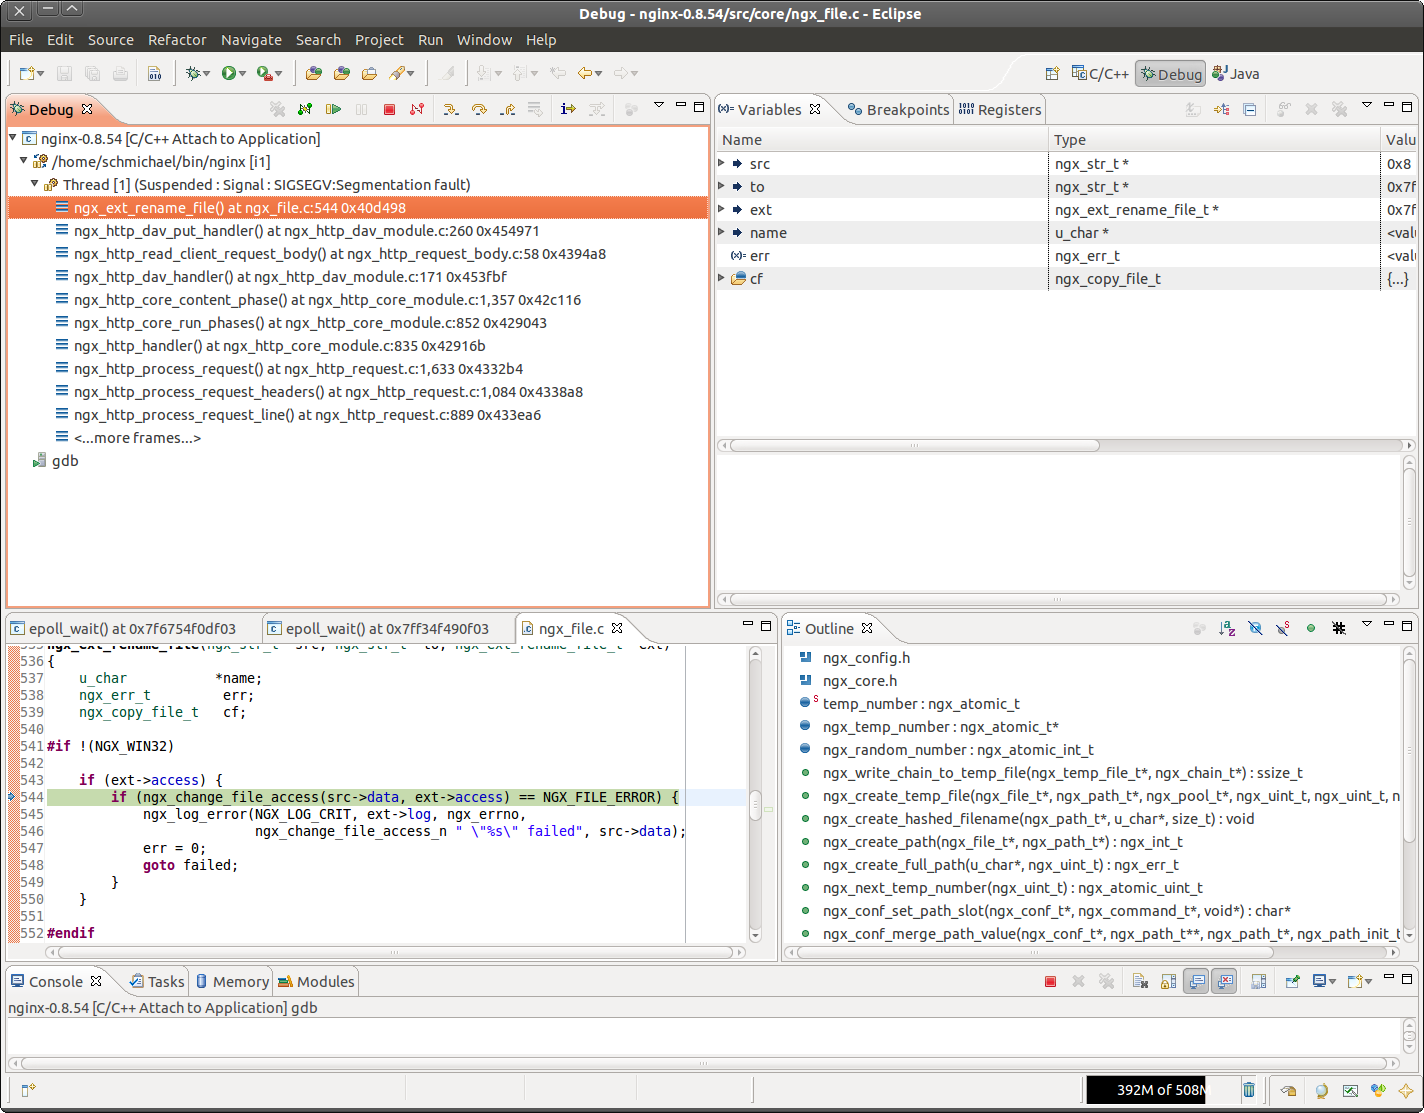 Debugging in Eclipse